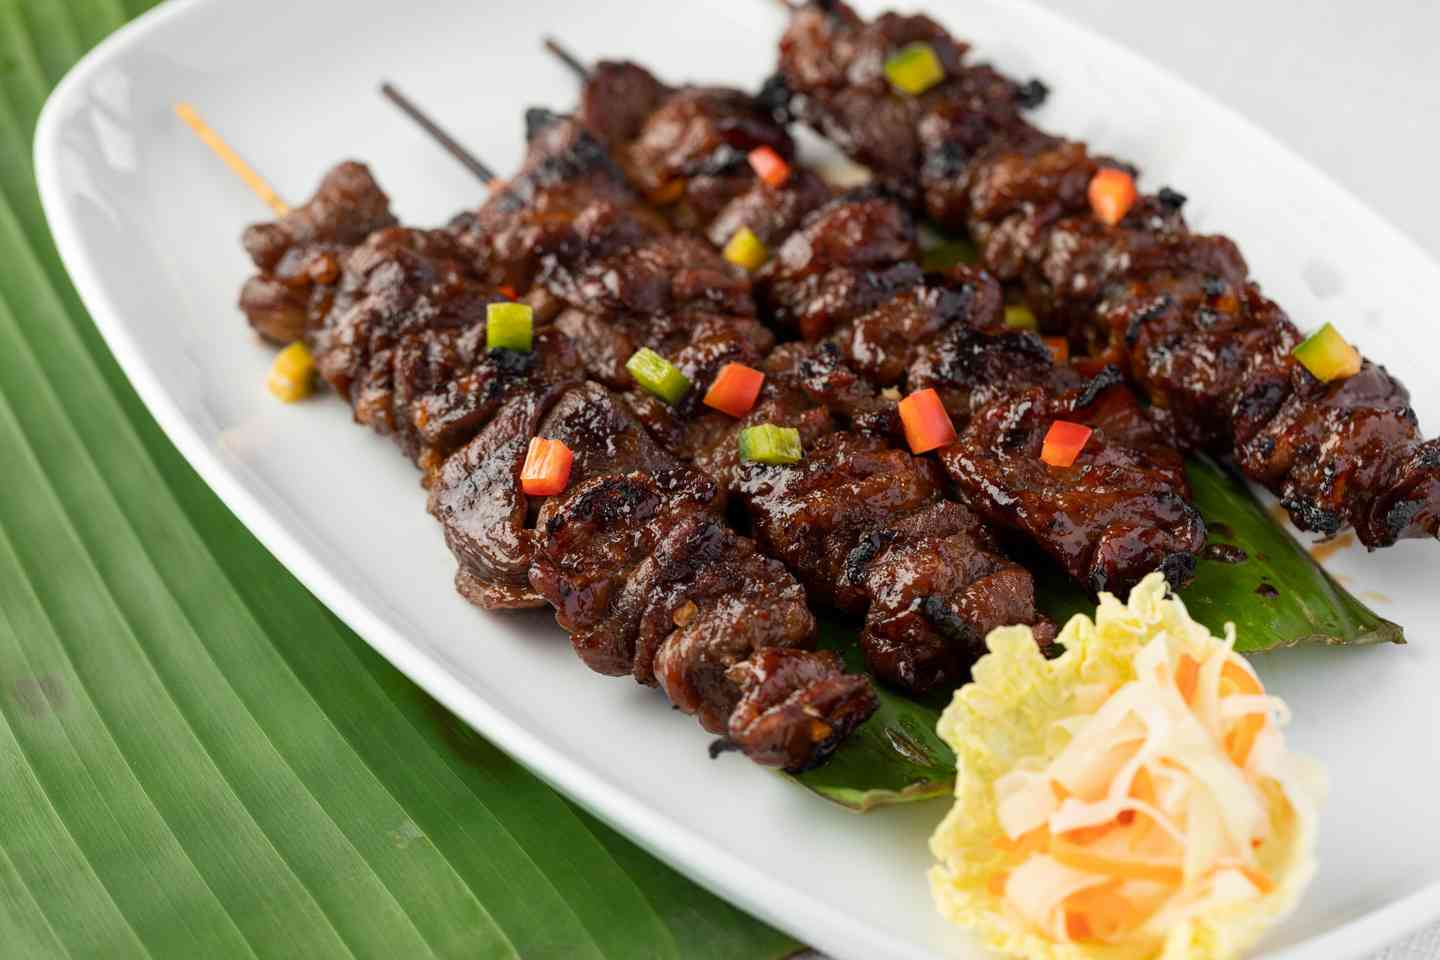 Filipino Pork Barbeque Skewer